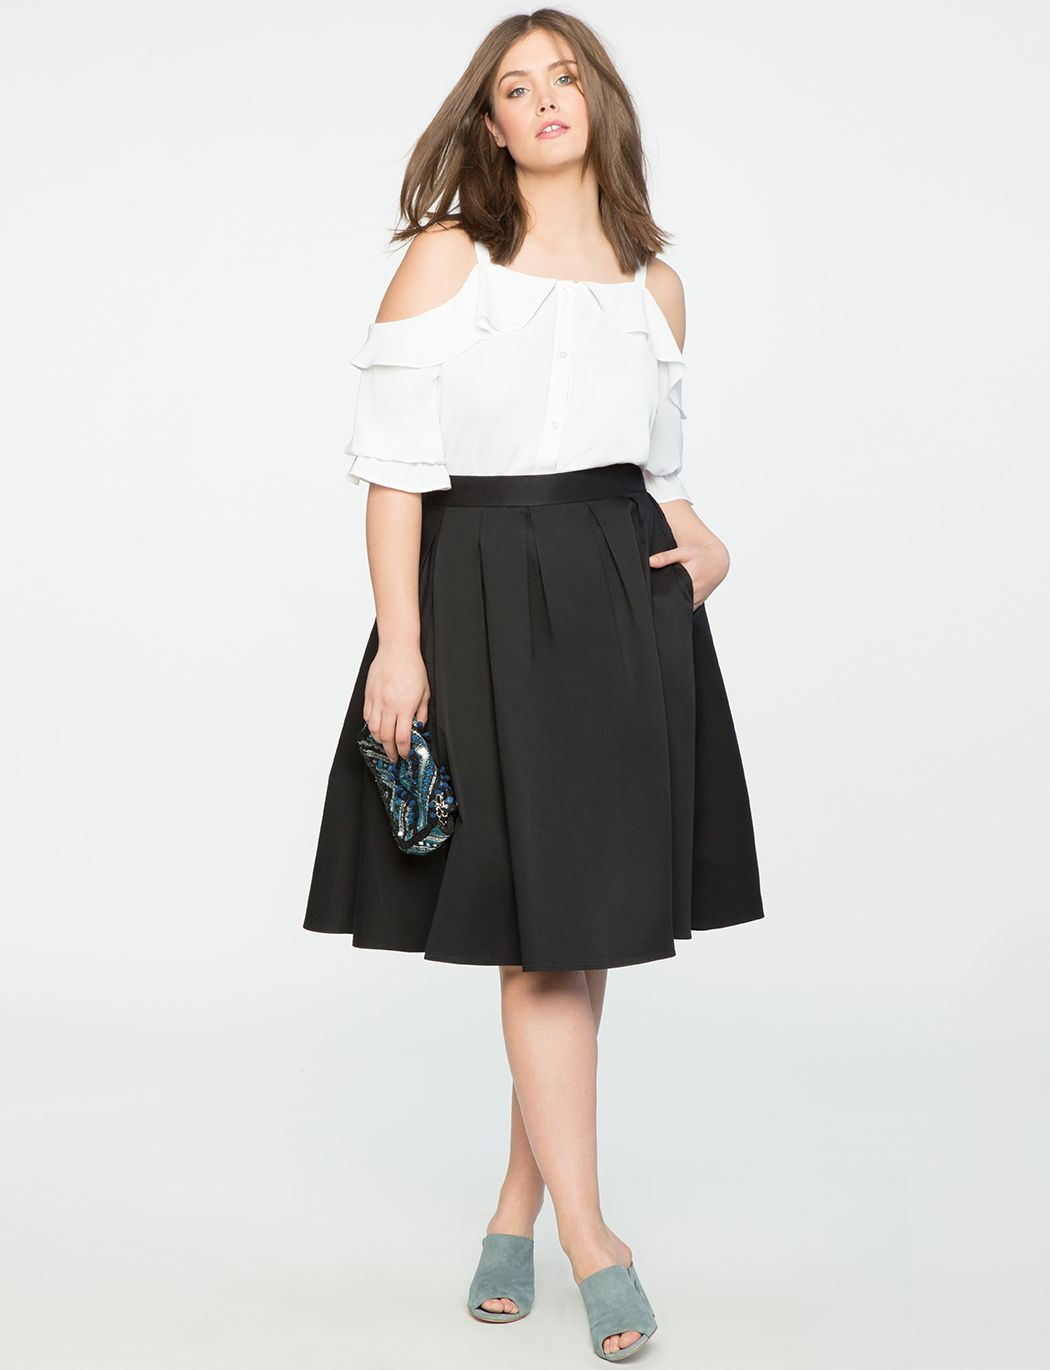 pleated midi skirt with pockets | women's plus size skirts